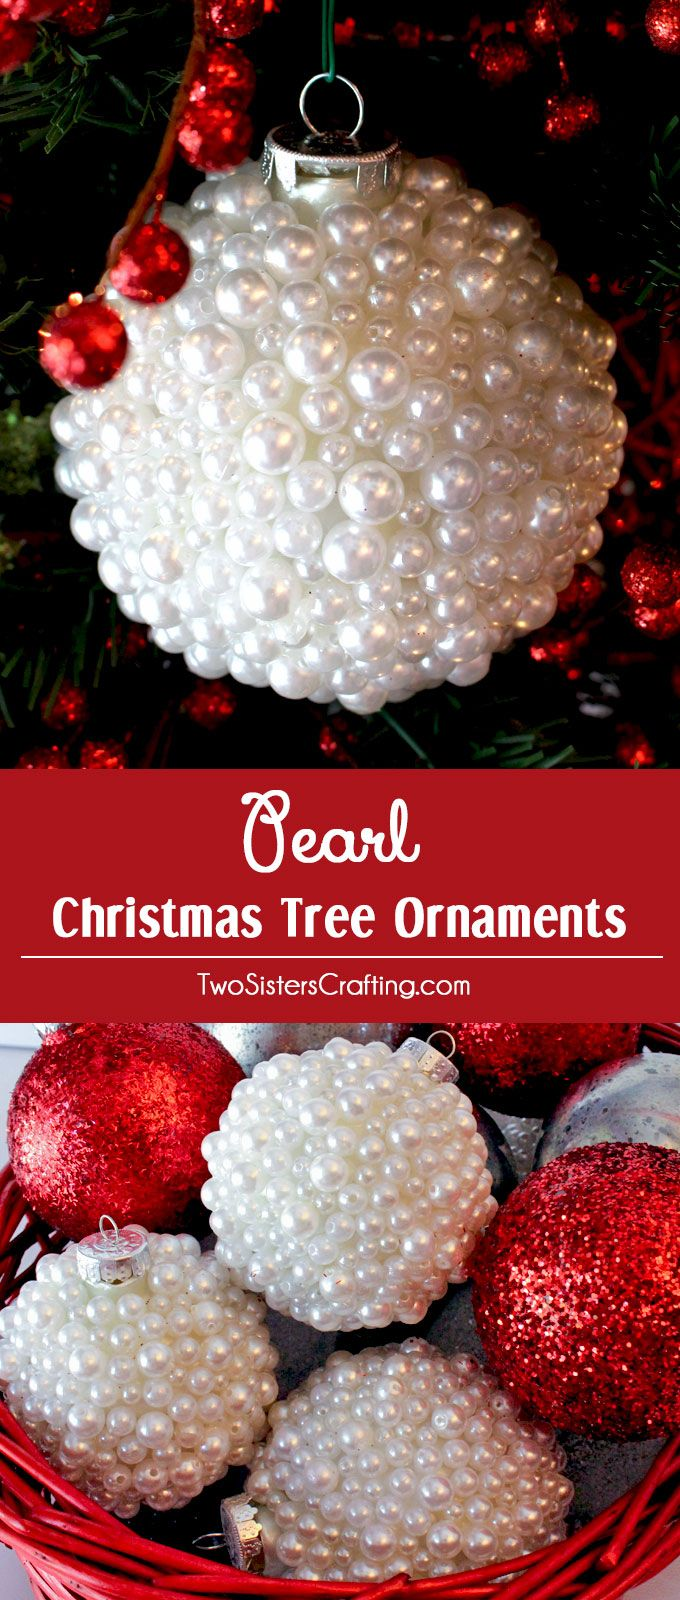 Best 25+ Unique christmas ornaments ideas on Pinterest | Diy ...